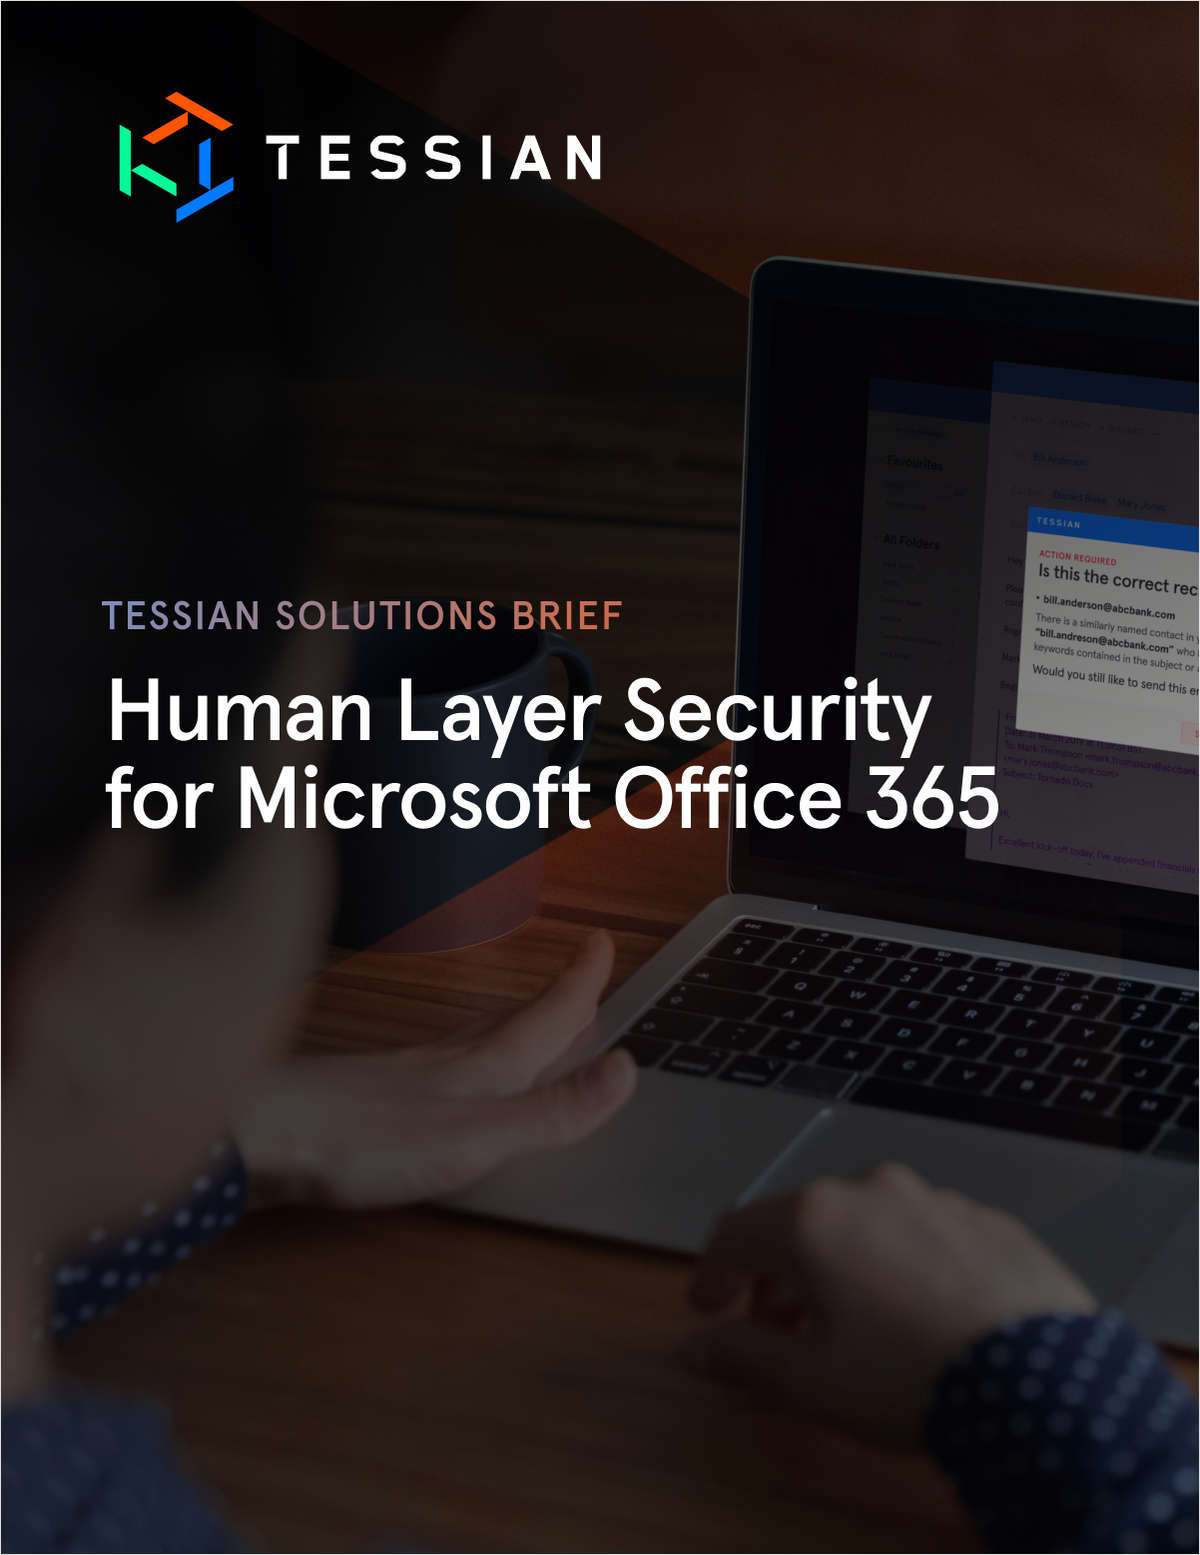 Human Layer Security for Microsoft Office 365